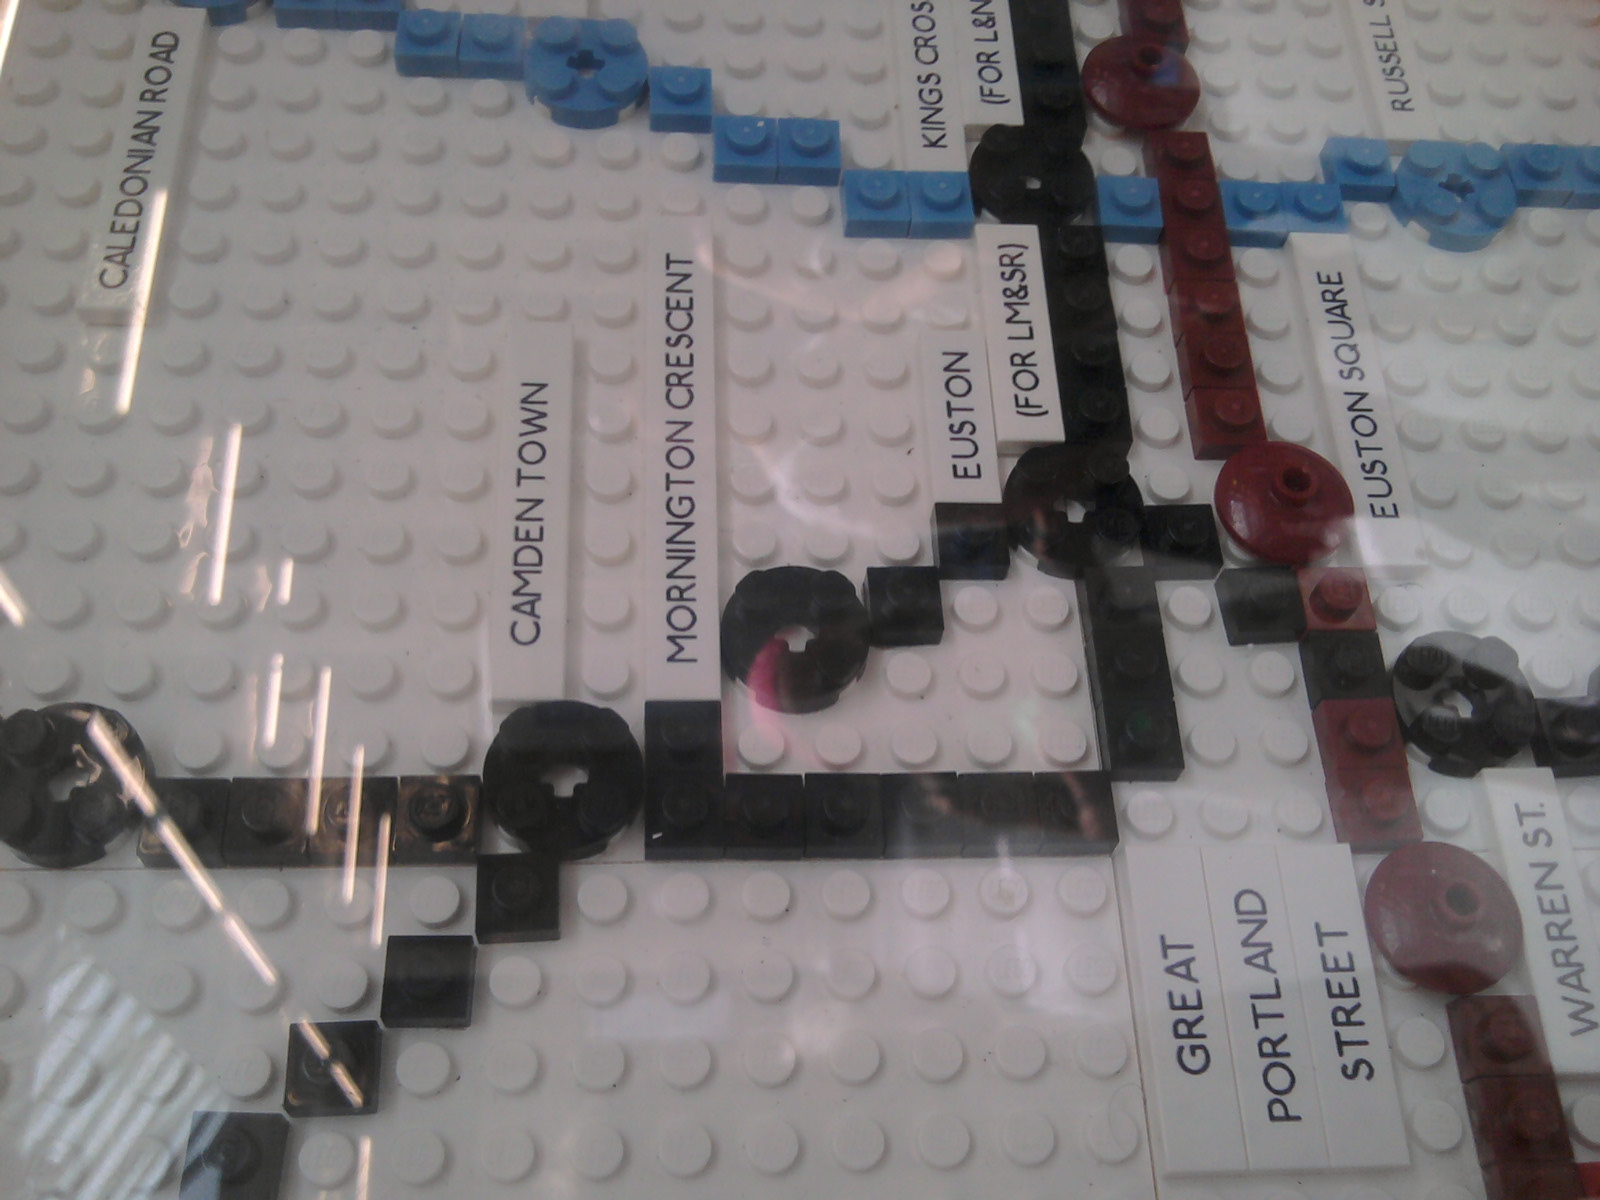 Mornington Crescent 1927 LEGO rules or a map at South Kensington Underground station